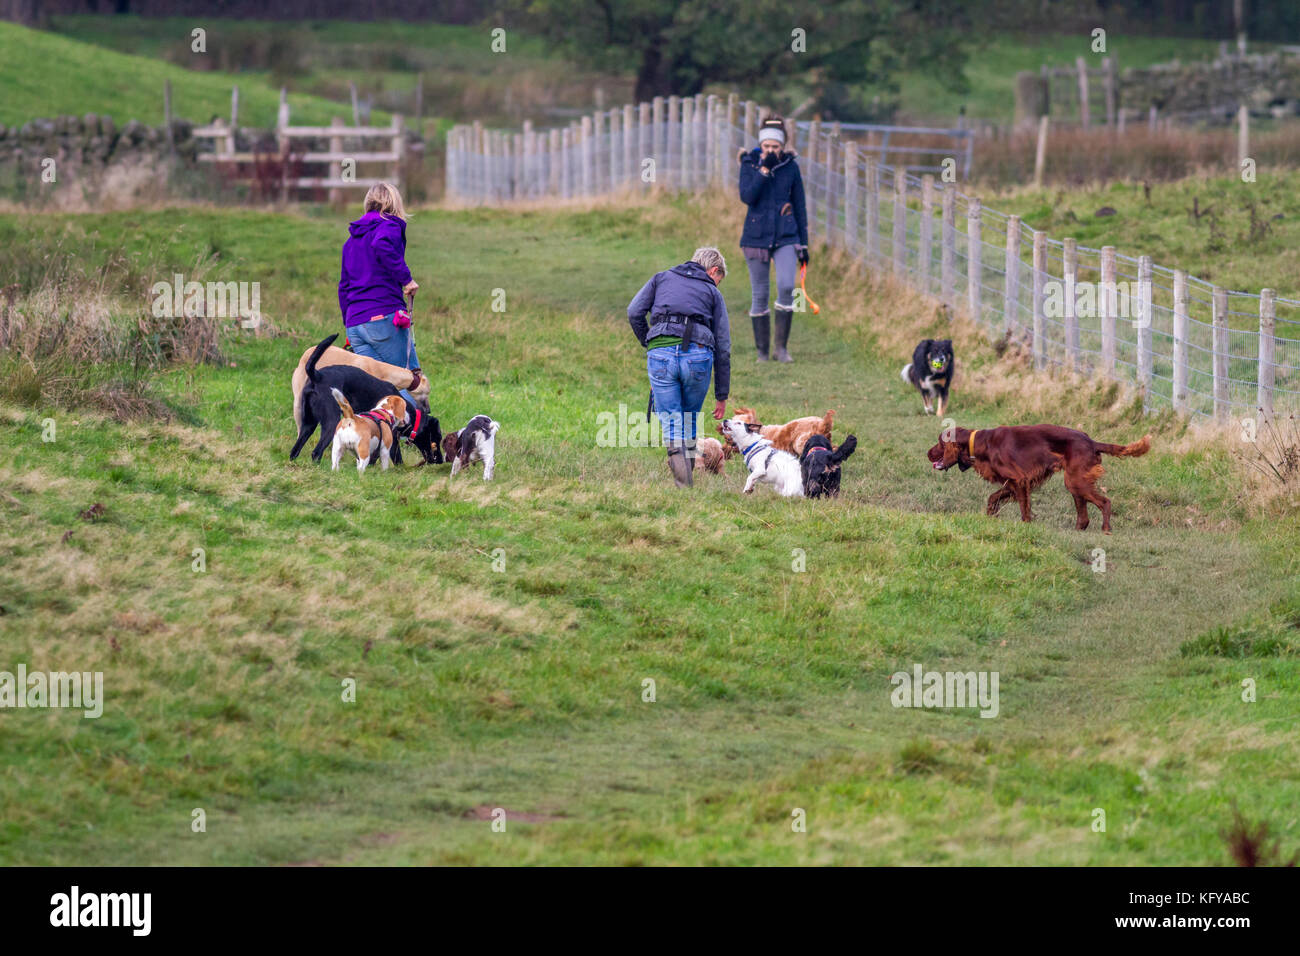 Dog walkers with a big pack of dogs in a field with another woman and collie approaching, UK - Stock Image